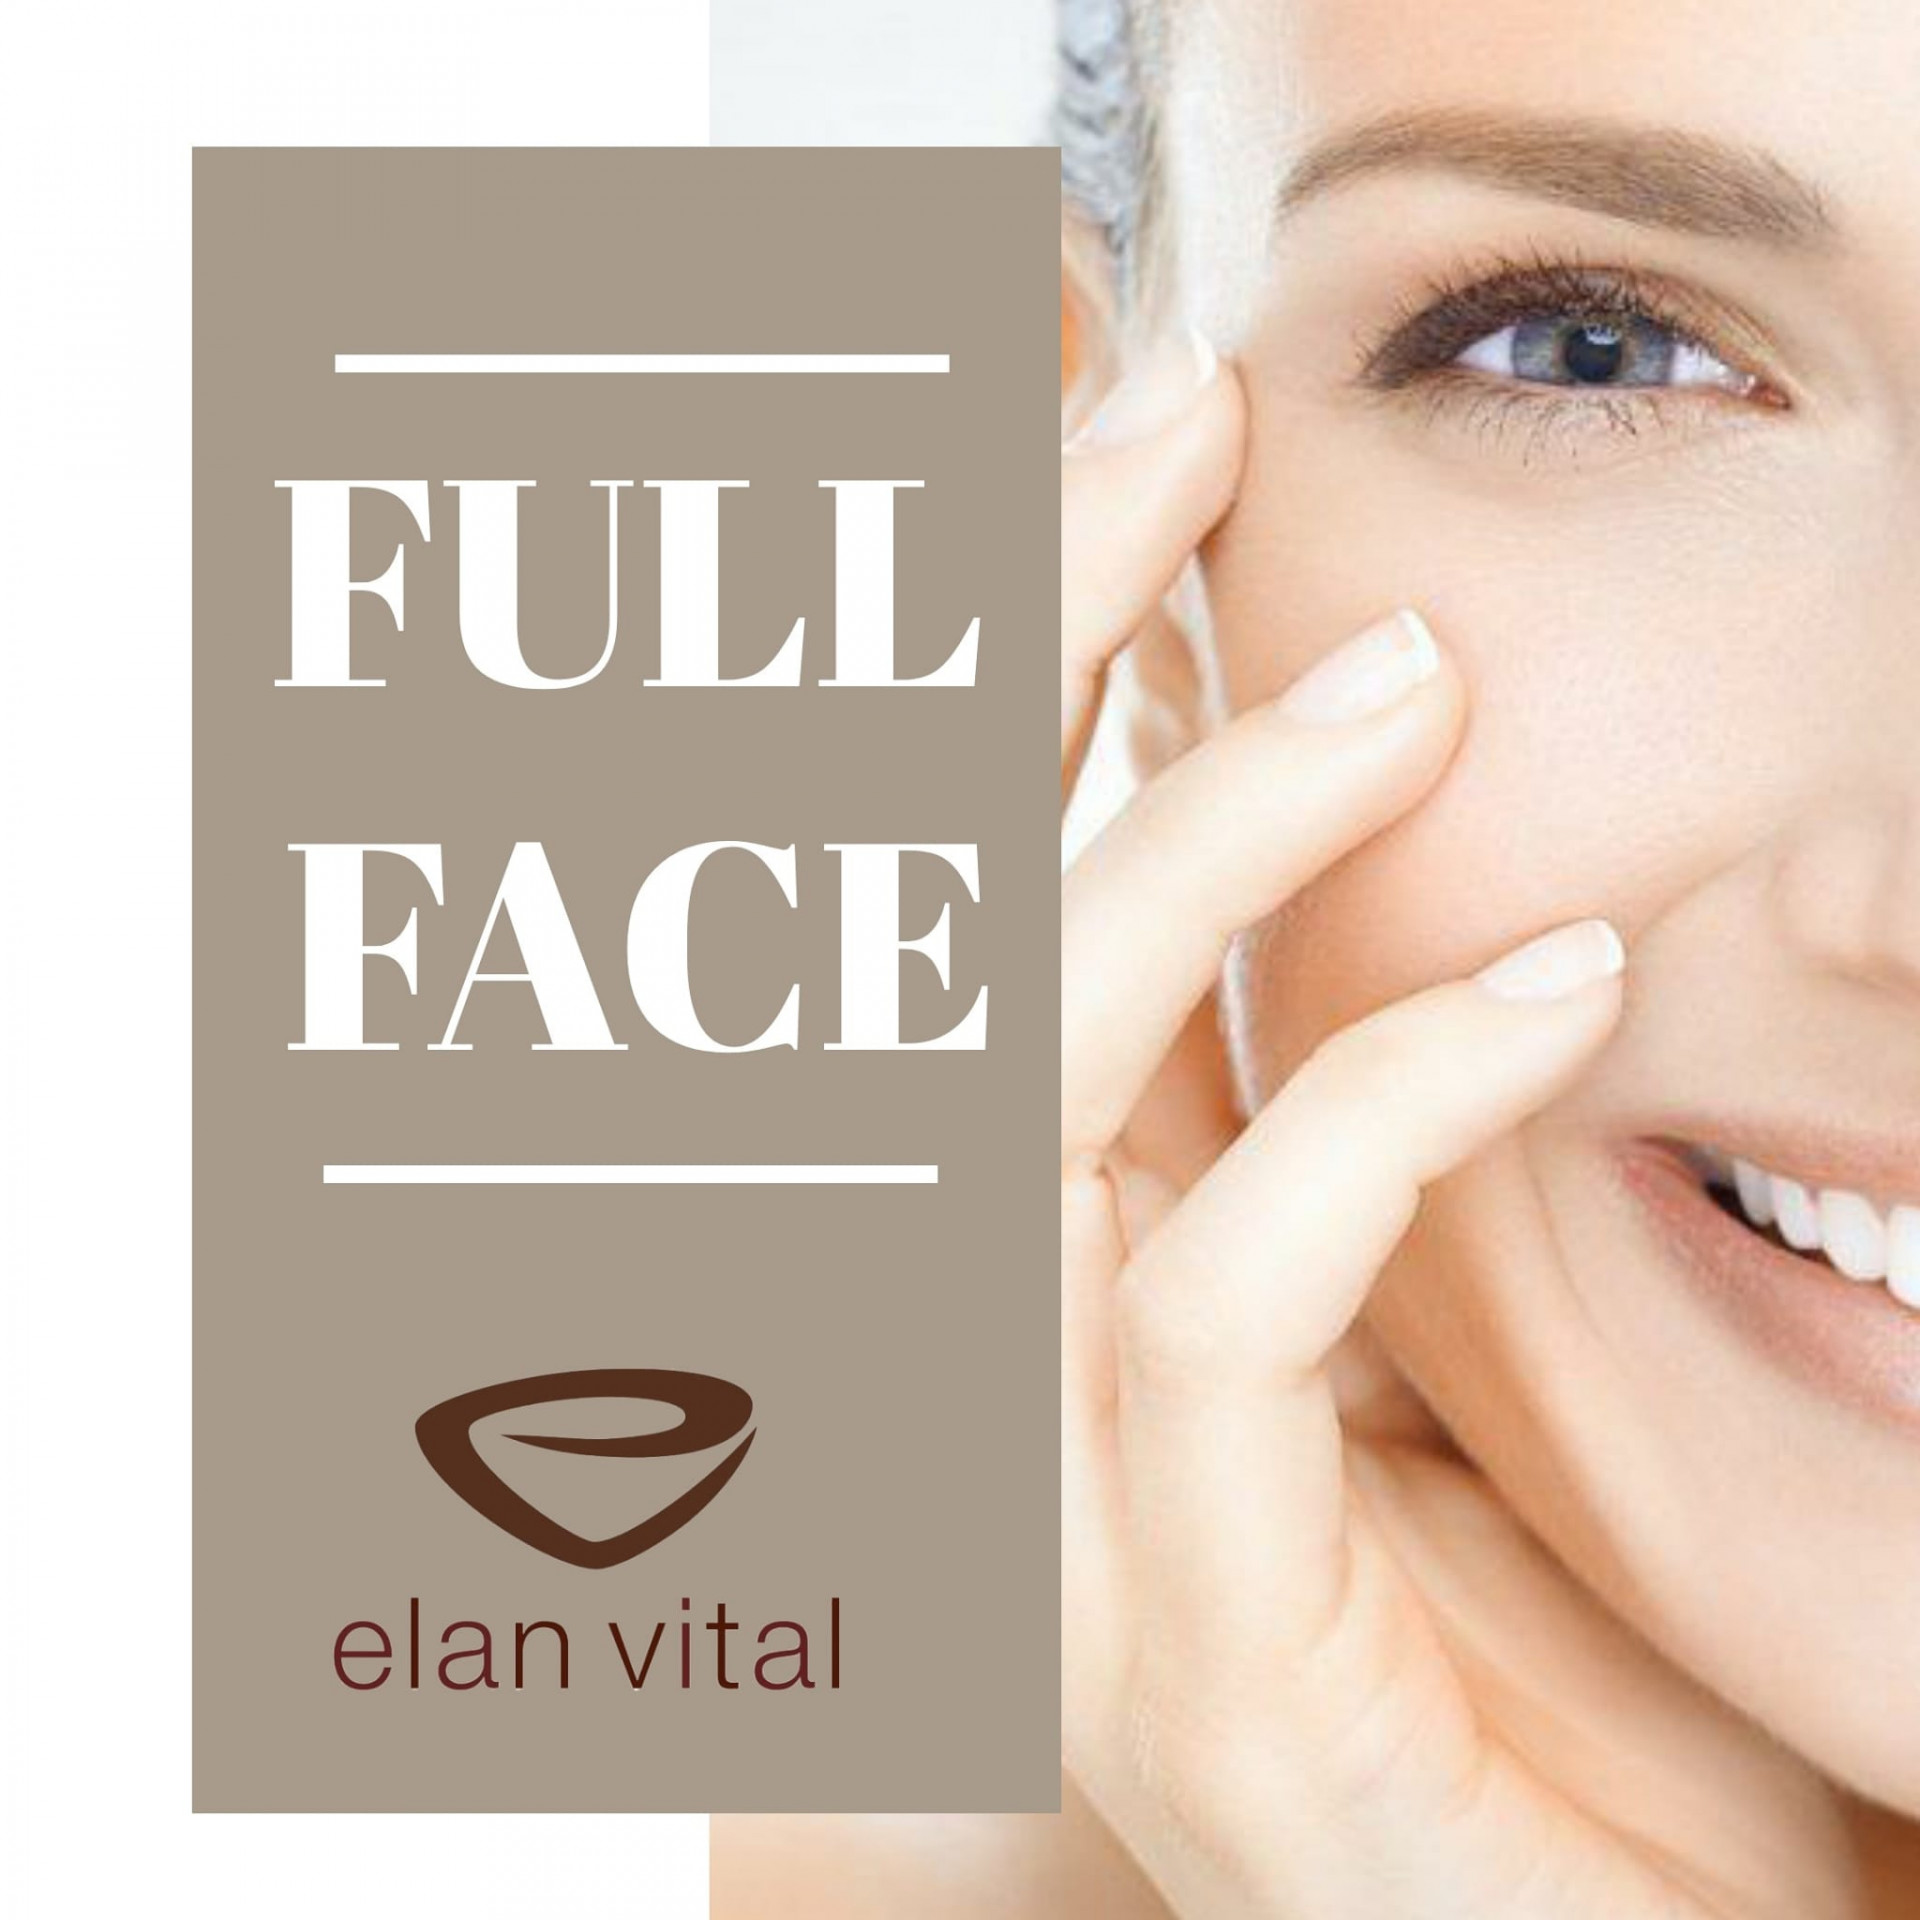 FULL FACE - Tractament integral facial a Elan Vital